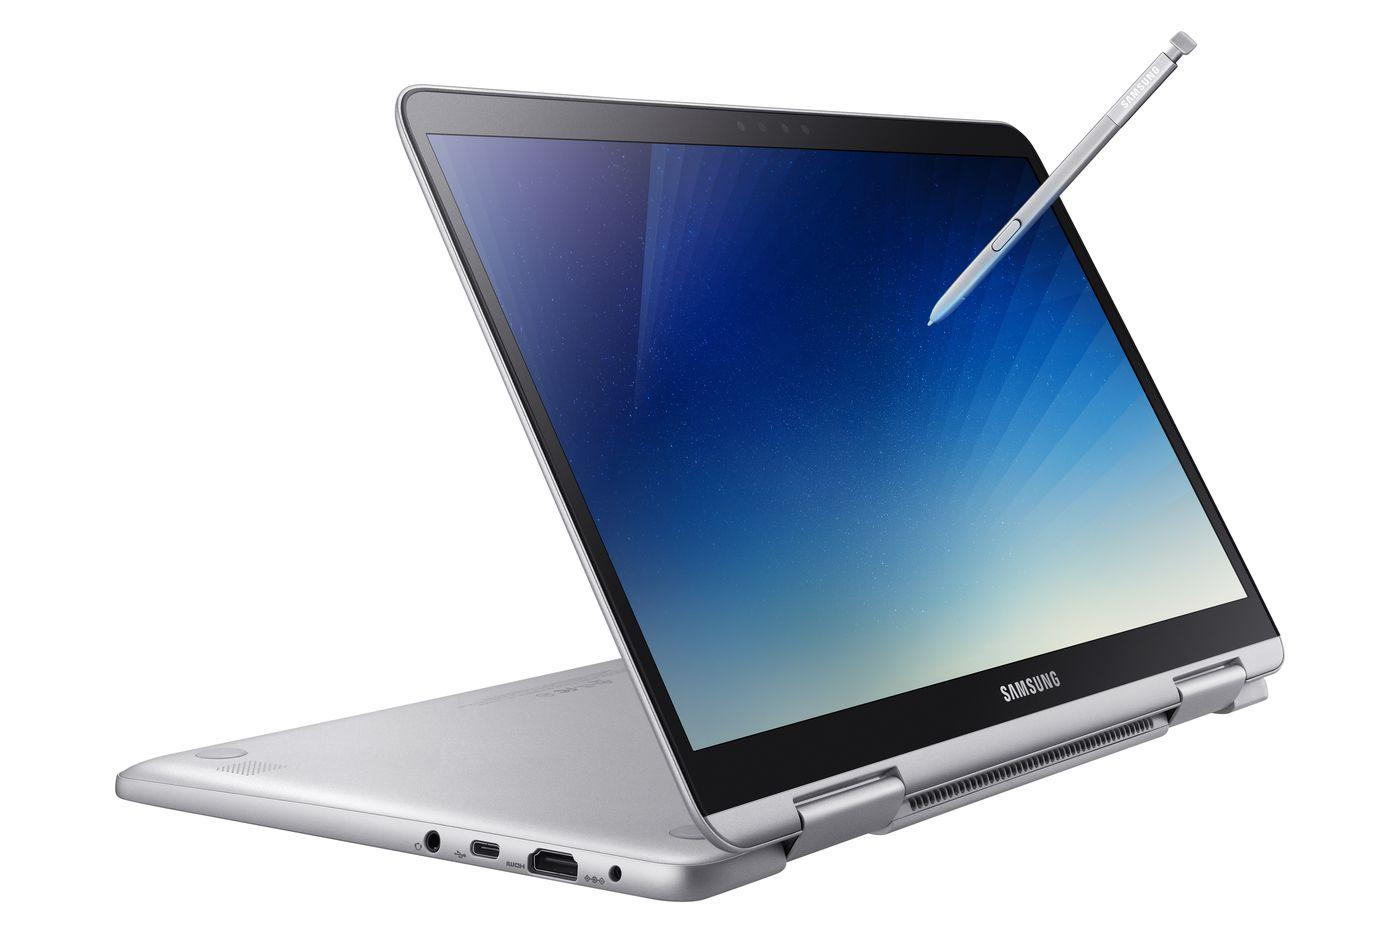 Uso del S pen en el Samsung Notebook 9 Pen